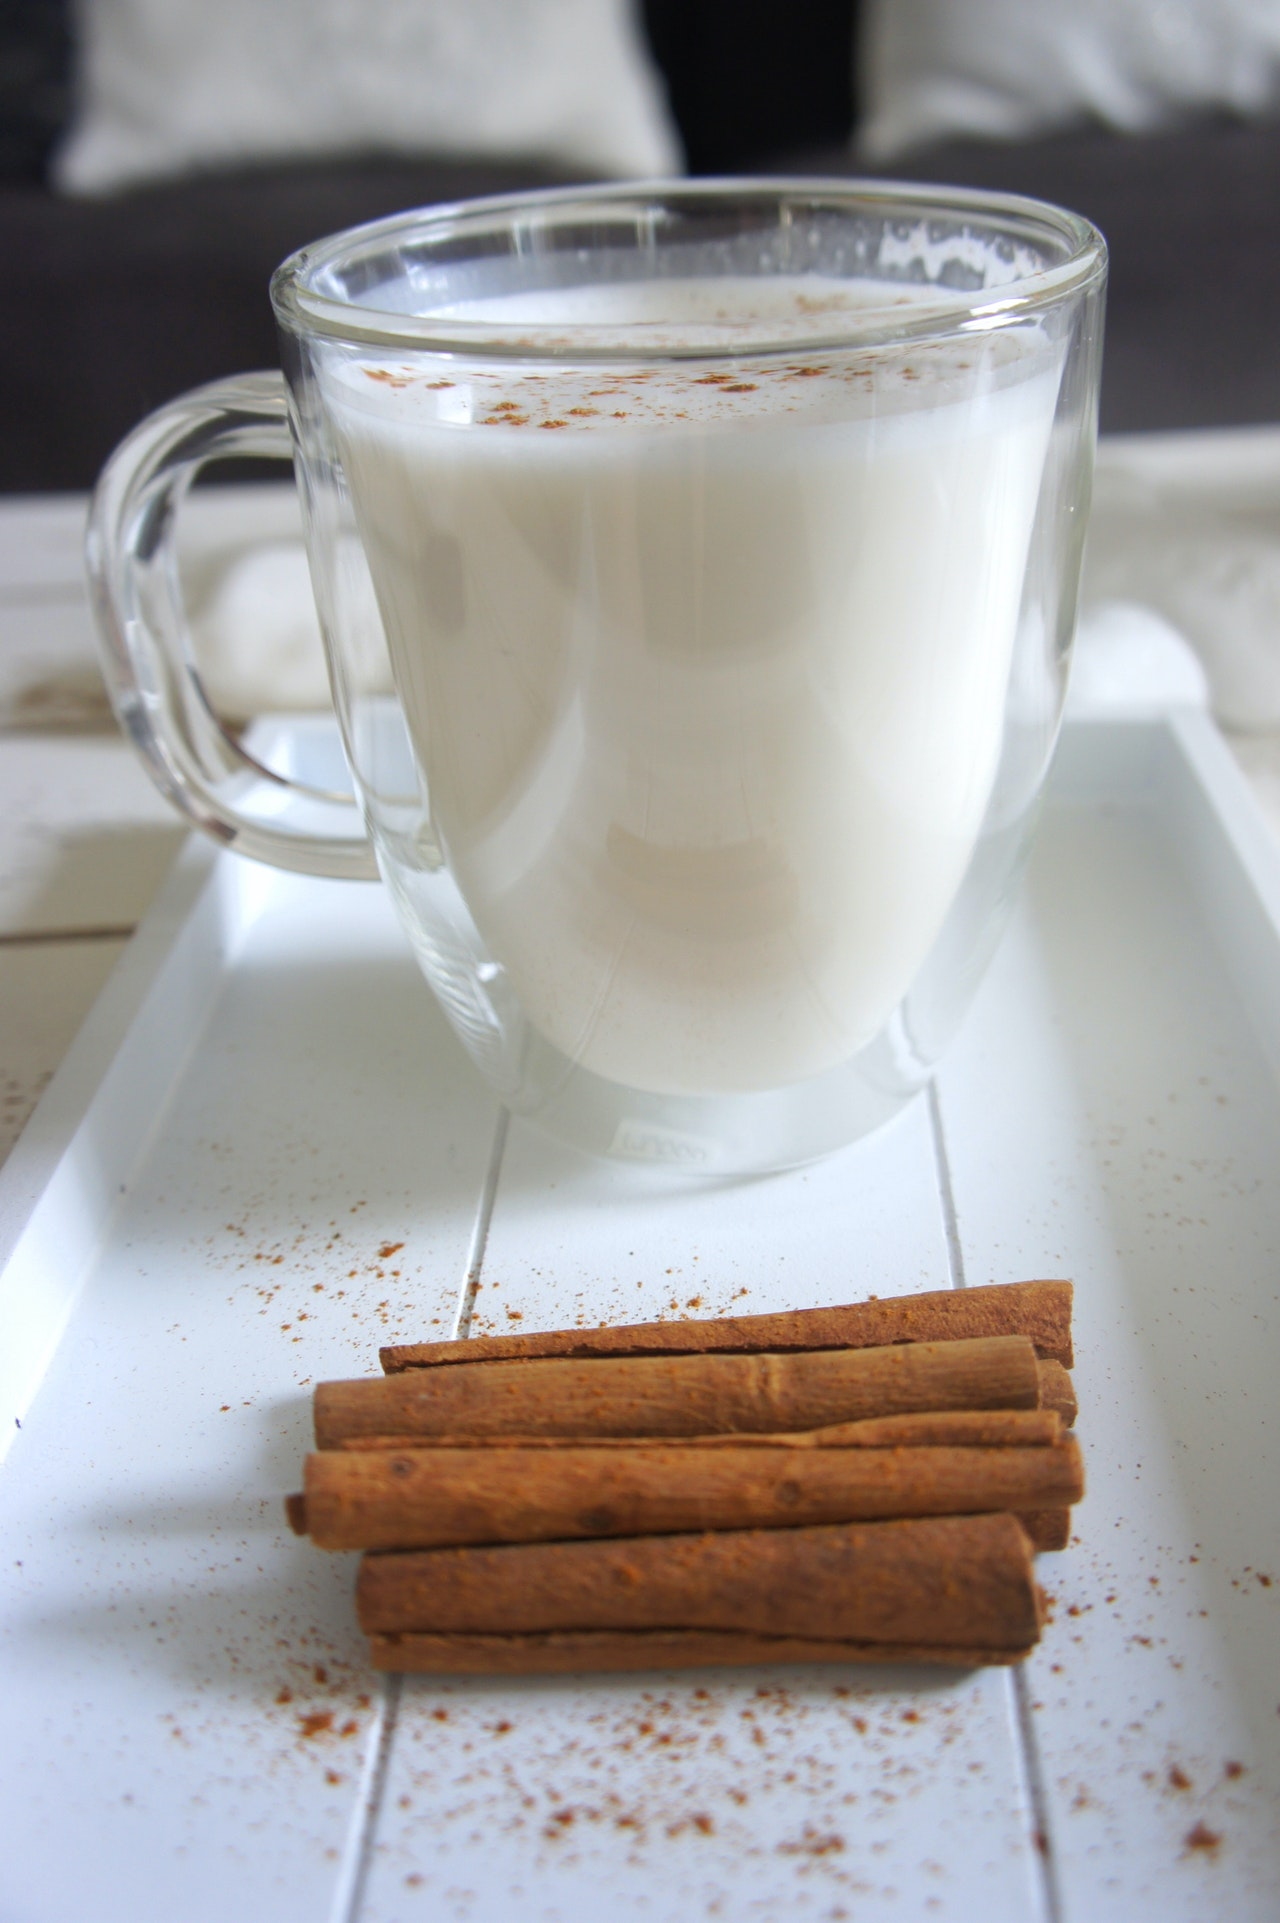 How to Grind Cinnamon